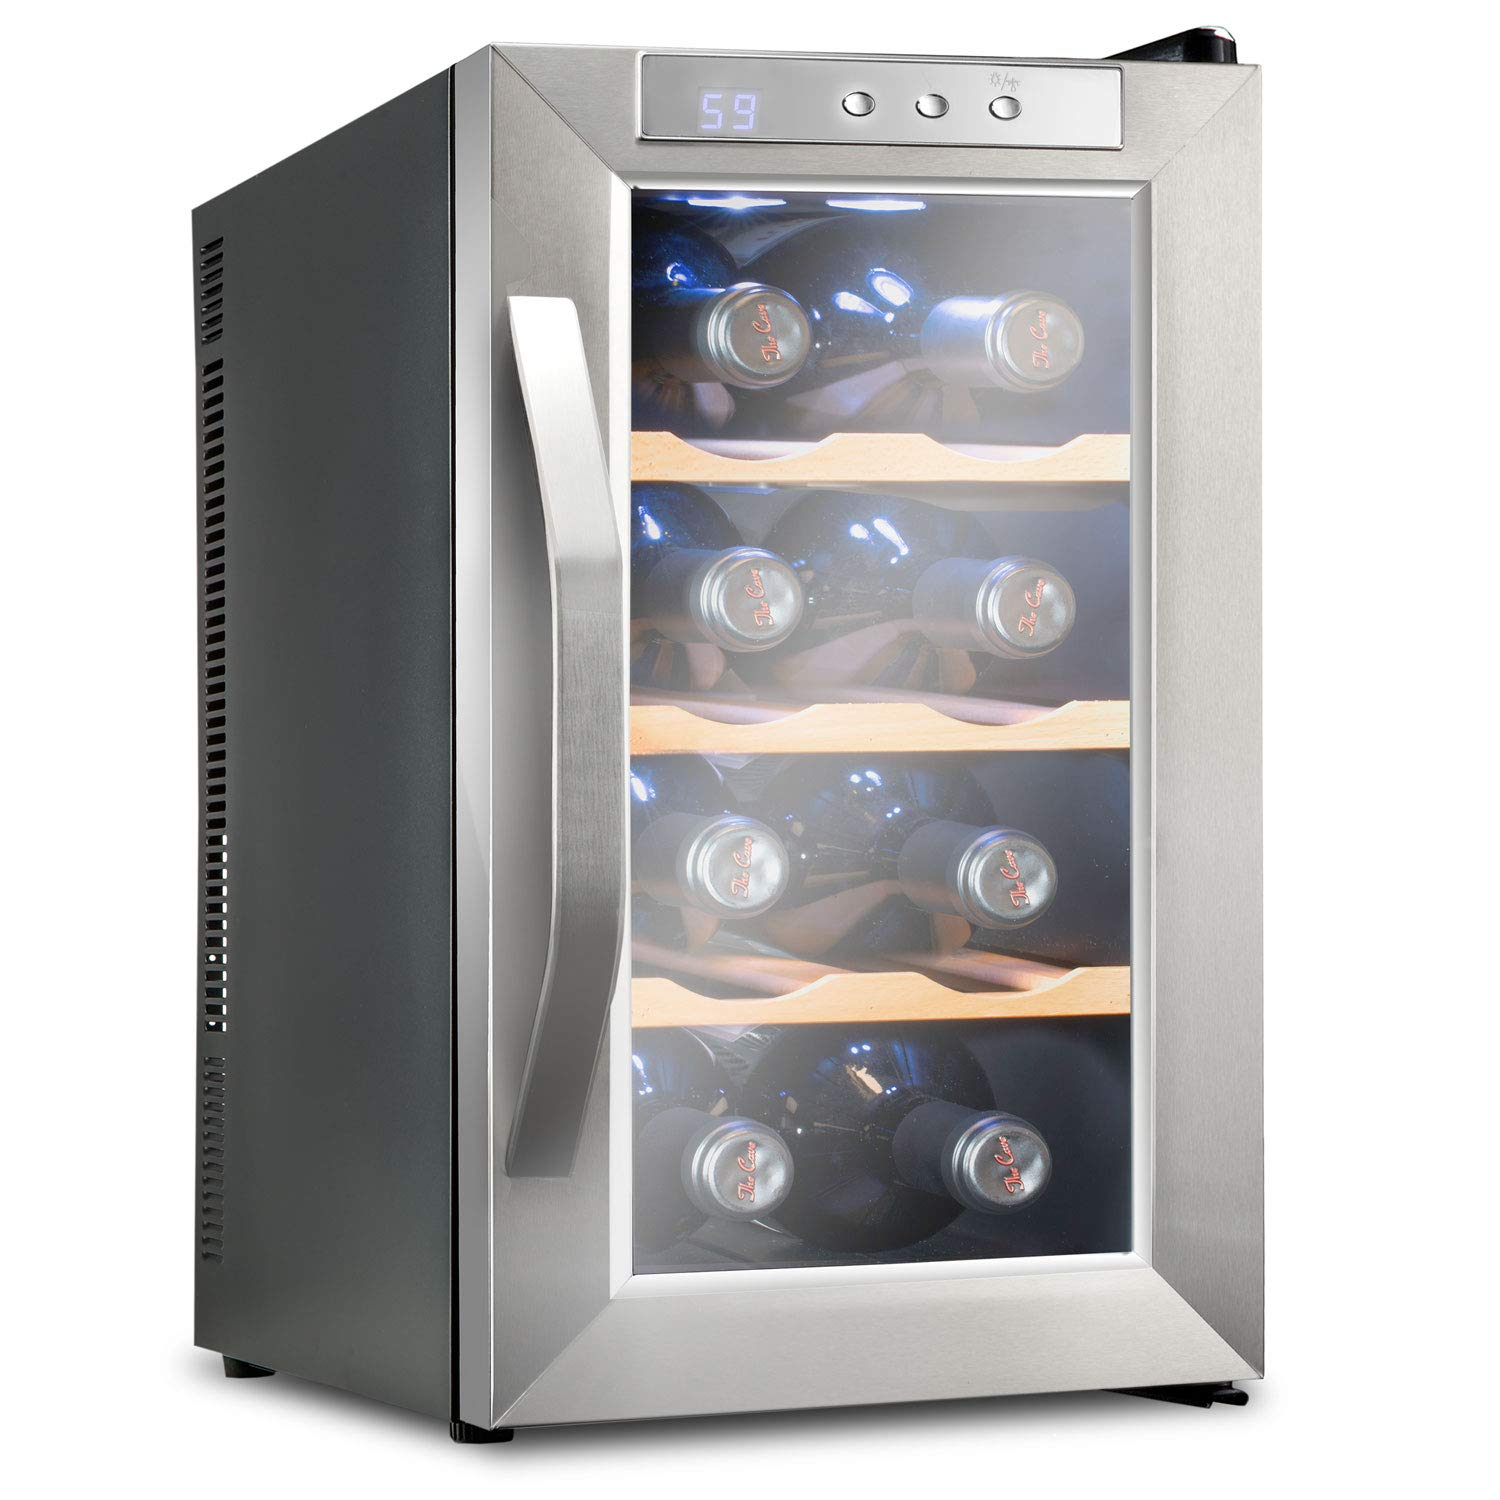 Ivation Premium Stainless Steel 8 Bottle Thermoelectric Wine Cooler/Chiller Counter Top Red & White Wine Cellar w/Digital Temperature, Freestanding Refrigerator Glass Door Quiet Operation Fridge IV-FWCT081WSS